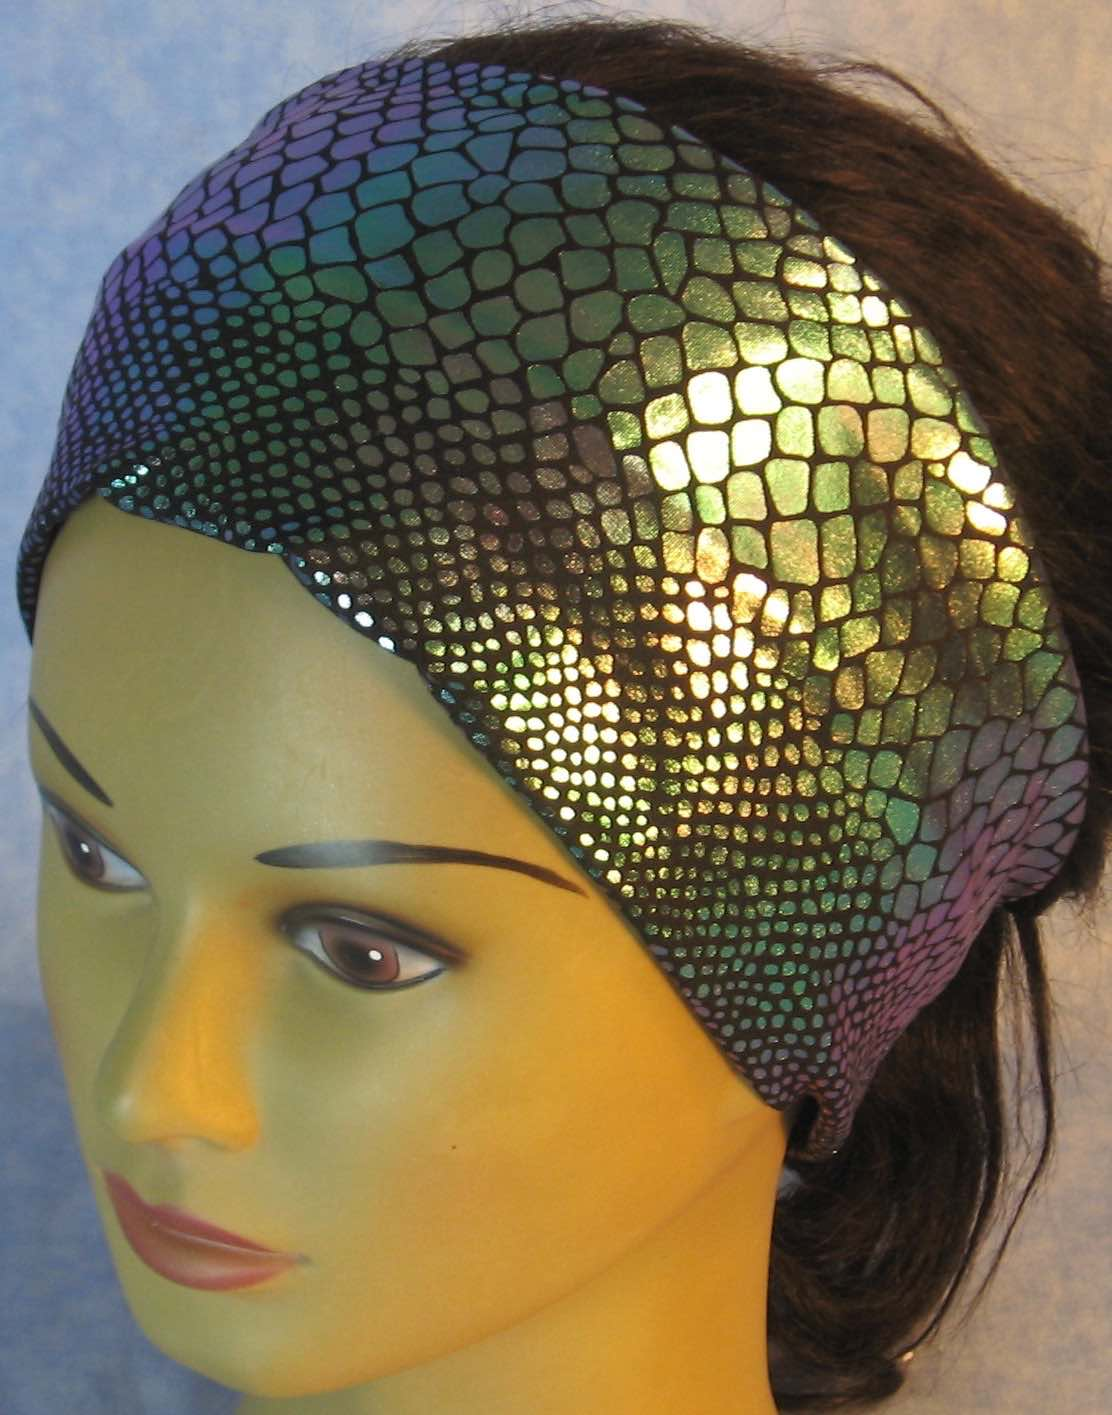 Headband-Lavender Turquoise Mermaid Tail Performance Knit-Youth L-XL